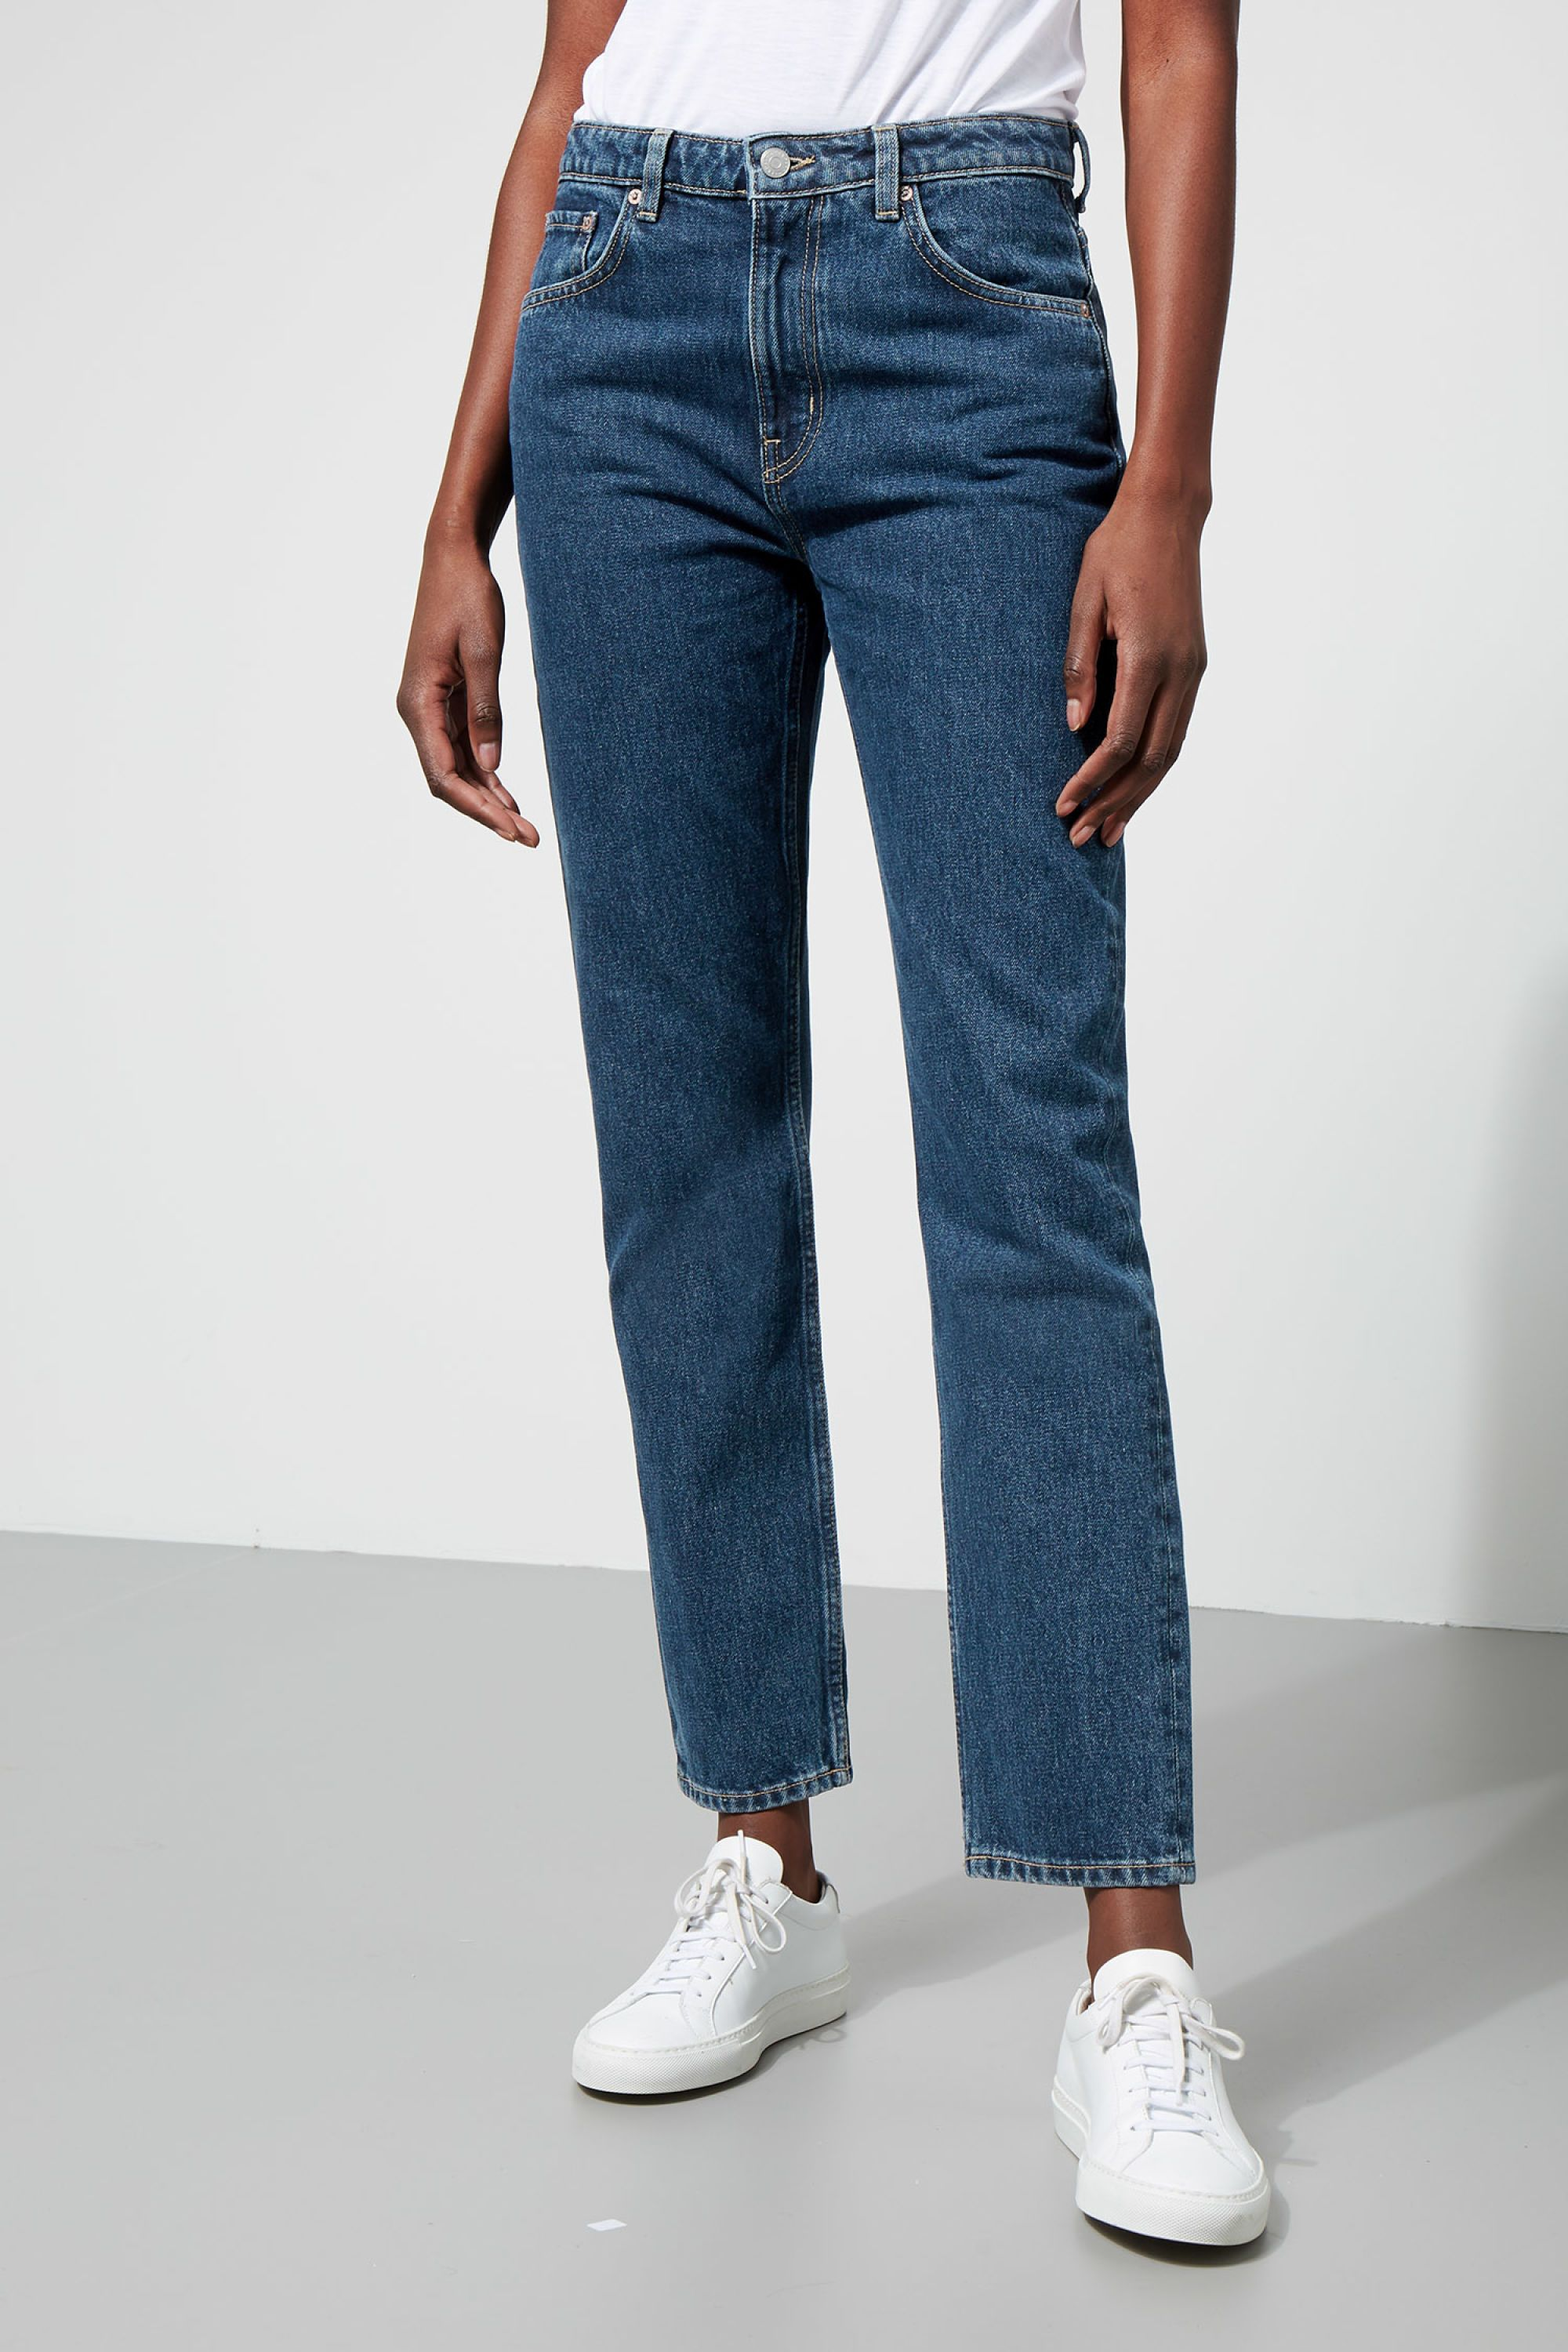 2b91481a2d0517 Seattle jeans combine a high waist, curvy seat line and slim legs with a  wider straight fit from knee down. Made of a slightly stretchy material,  they have